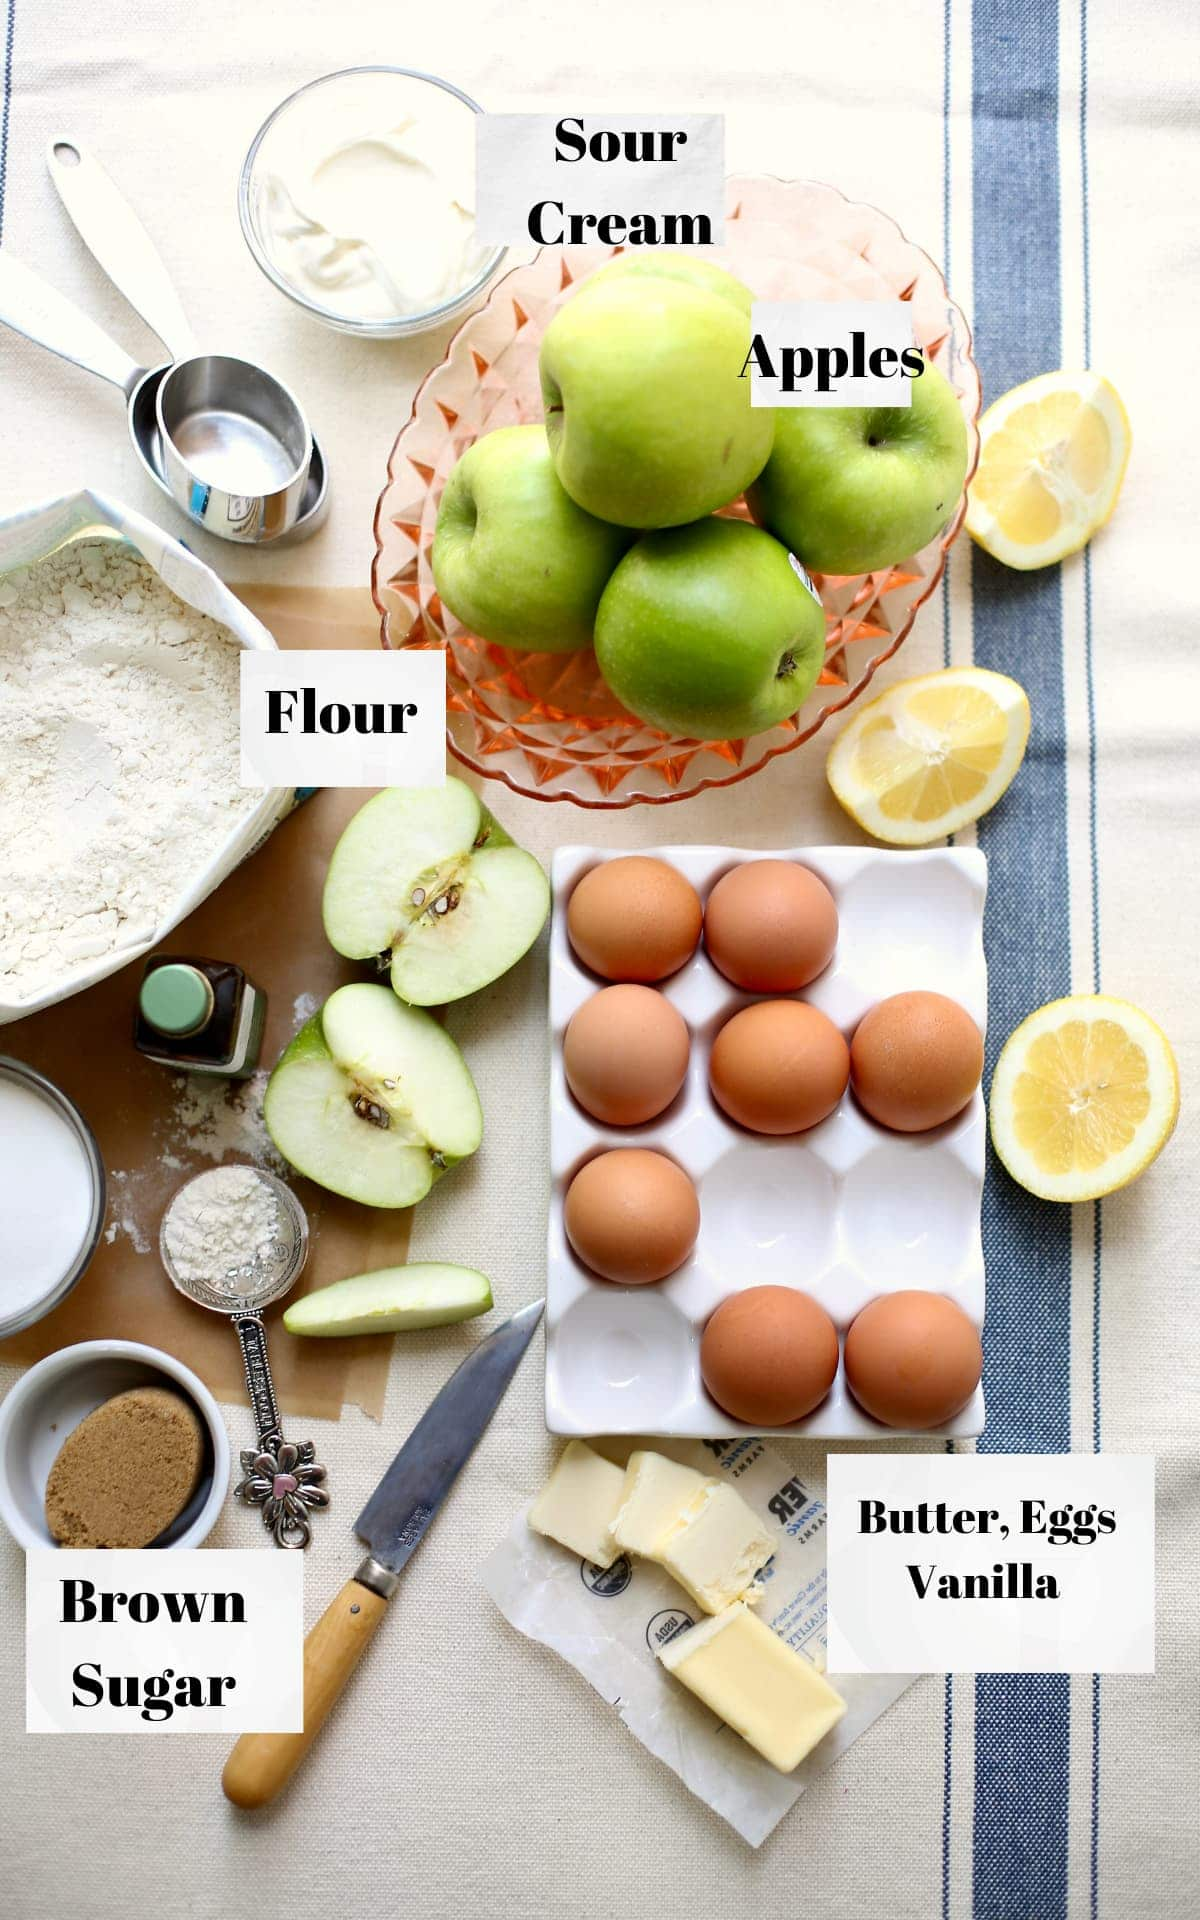 a photo of a table of ingredients for cake: apples, flour, eggs, butter, with a text overlay saying the names of the ingredients.